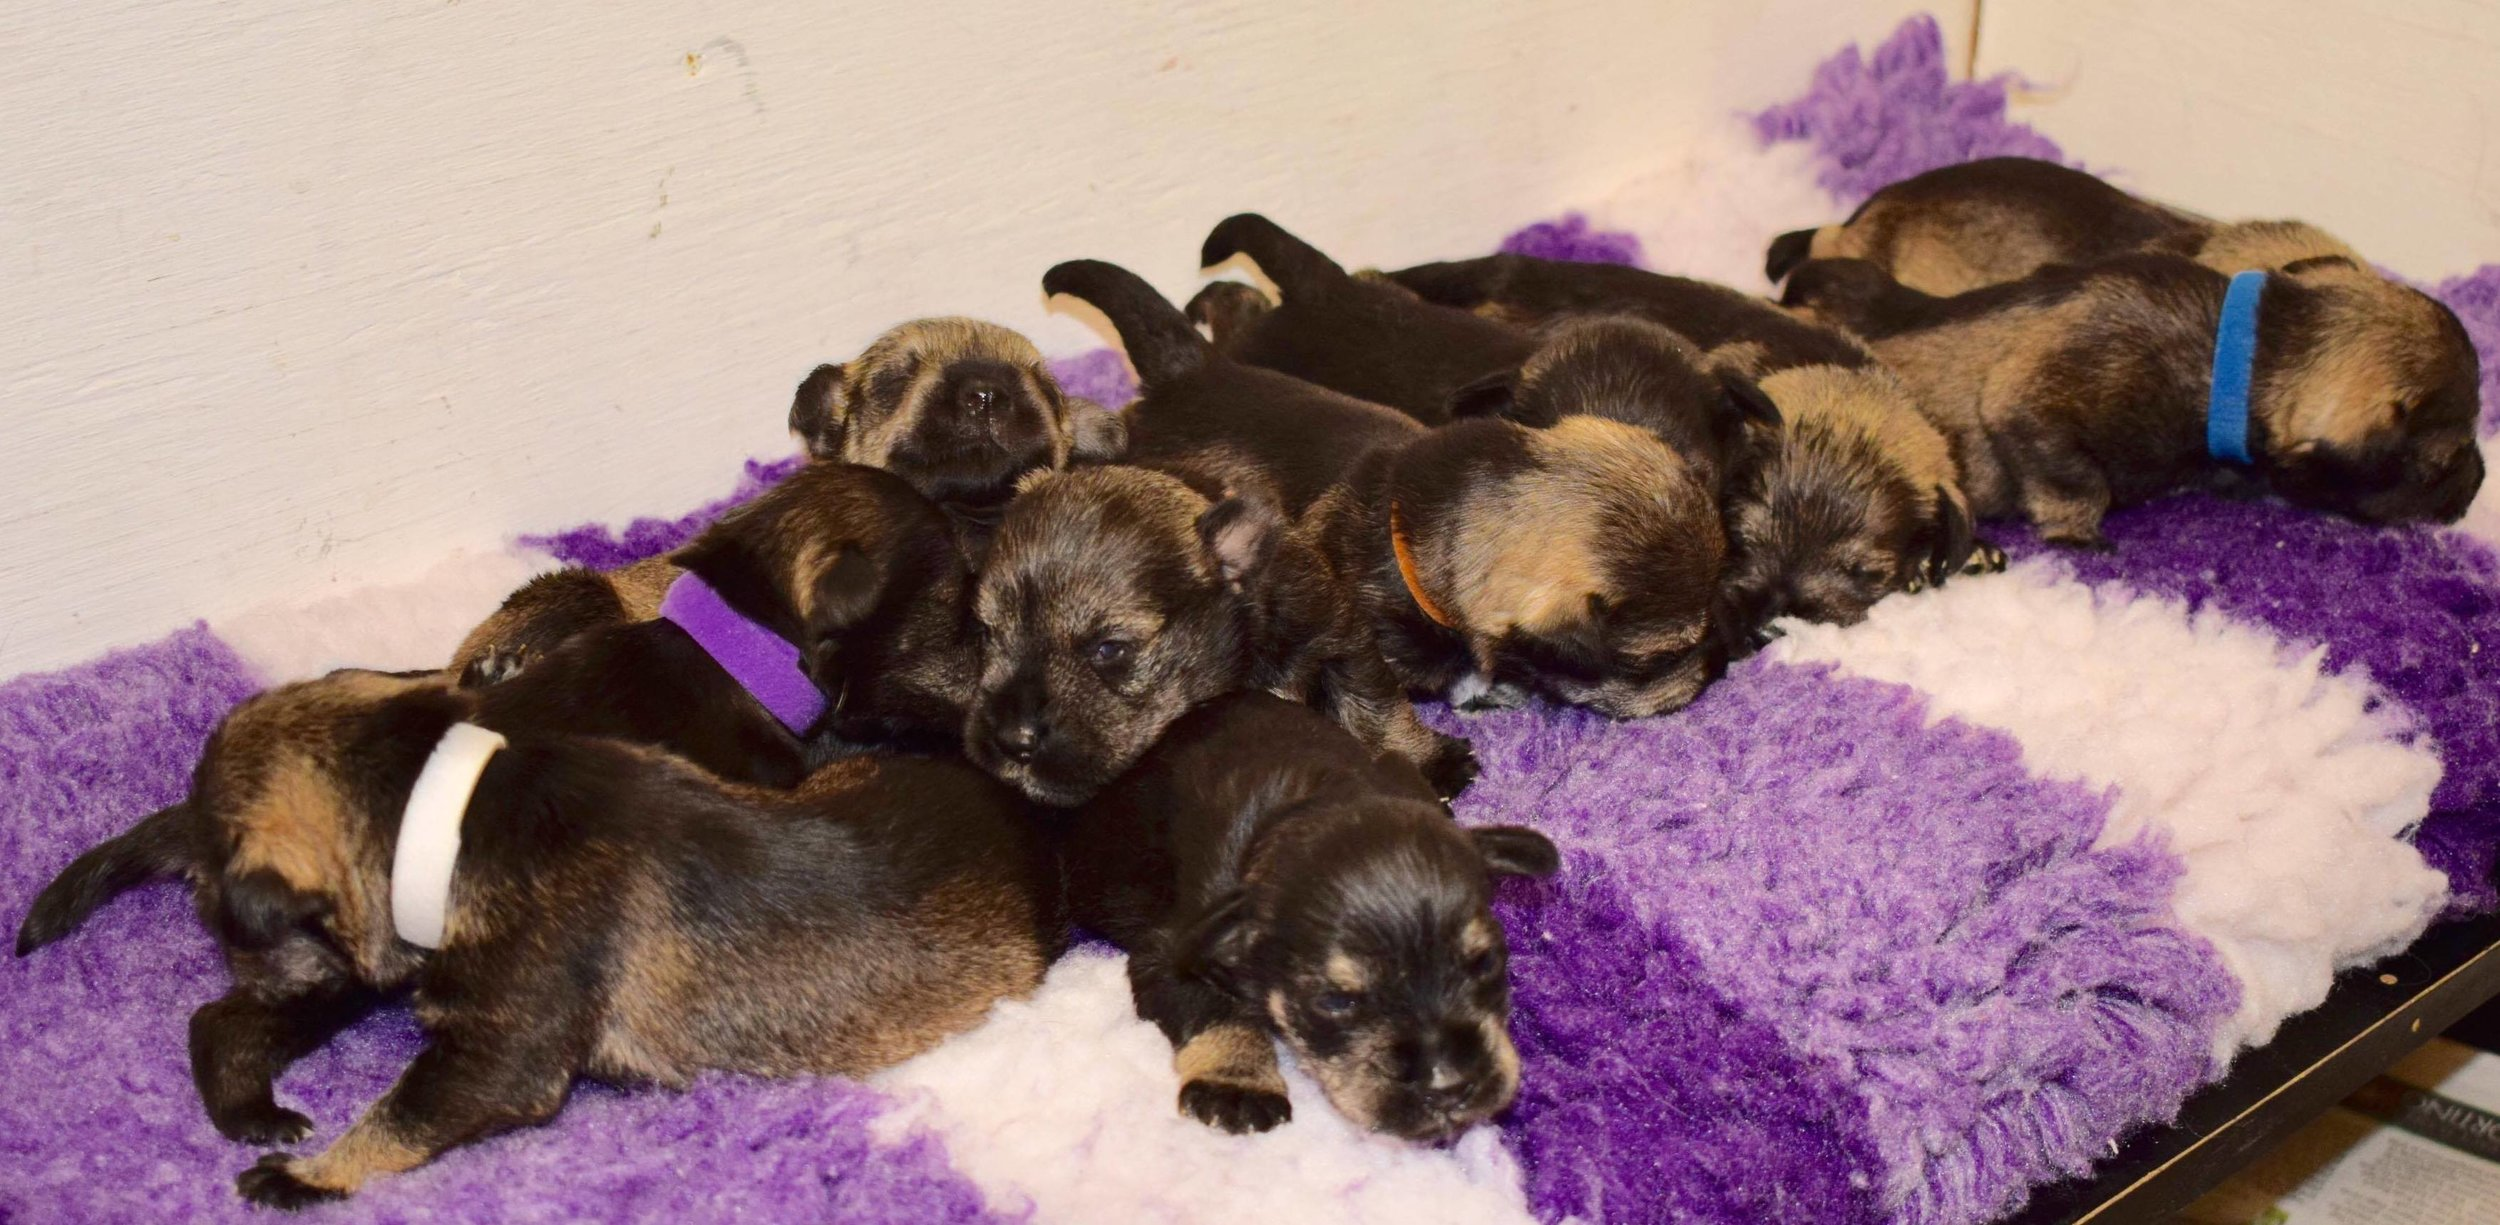 All ten of Lara's puppies, together and about to be reunited with mum.